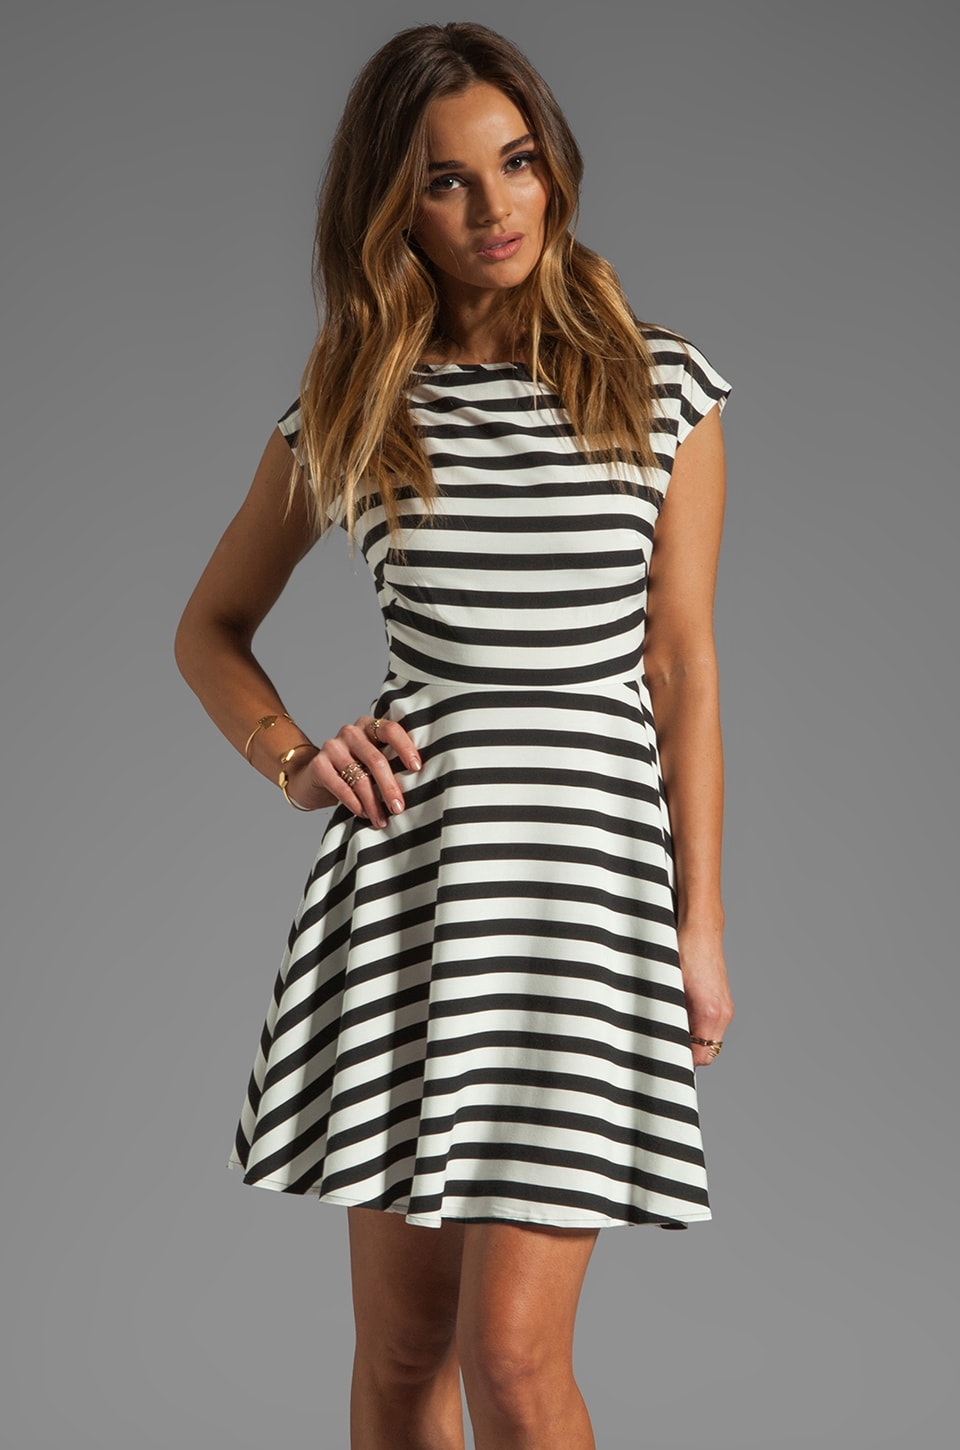 BB Dakota Zamora Stripe Rayon Dress in Black/Optic White